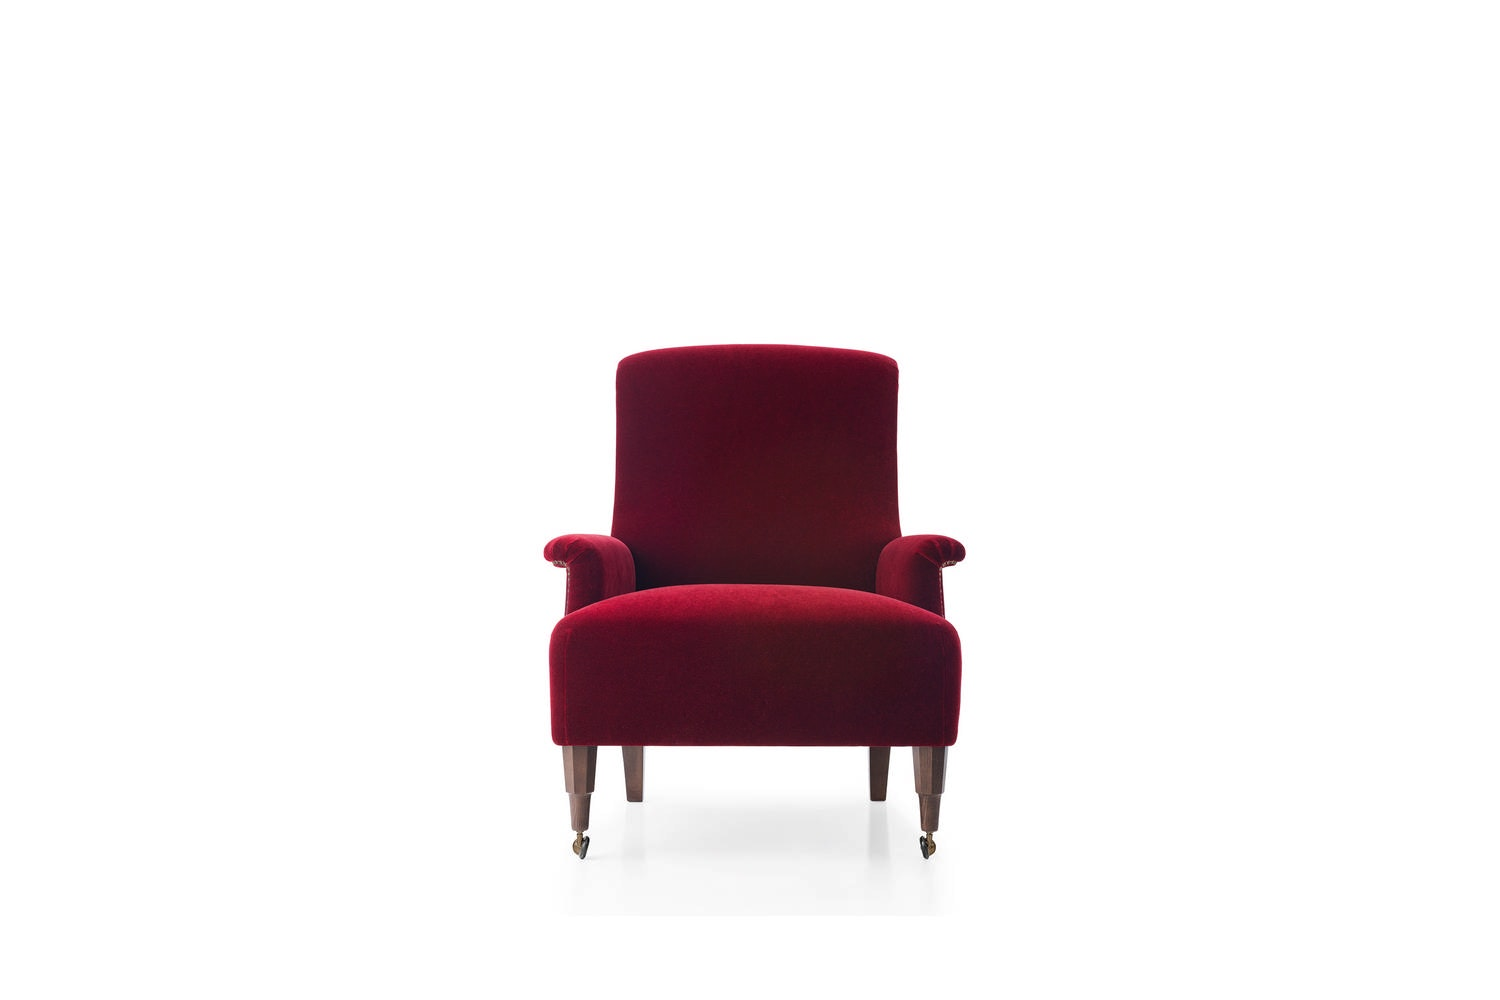 ABCD Armchair by Luigi Caccia Dominioni for Azucena